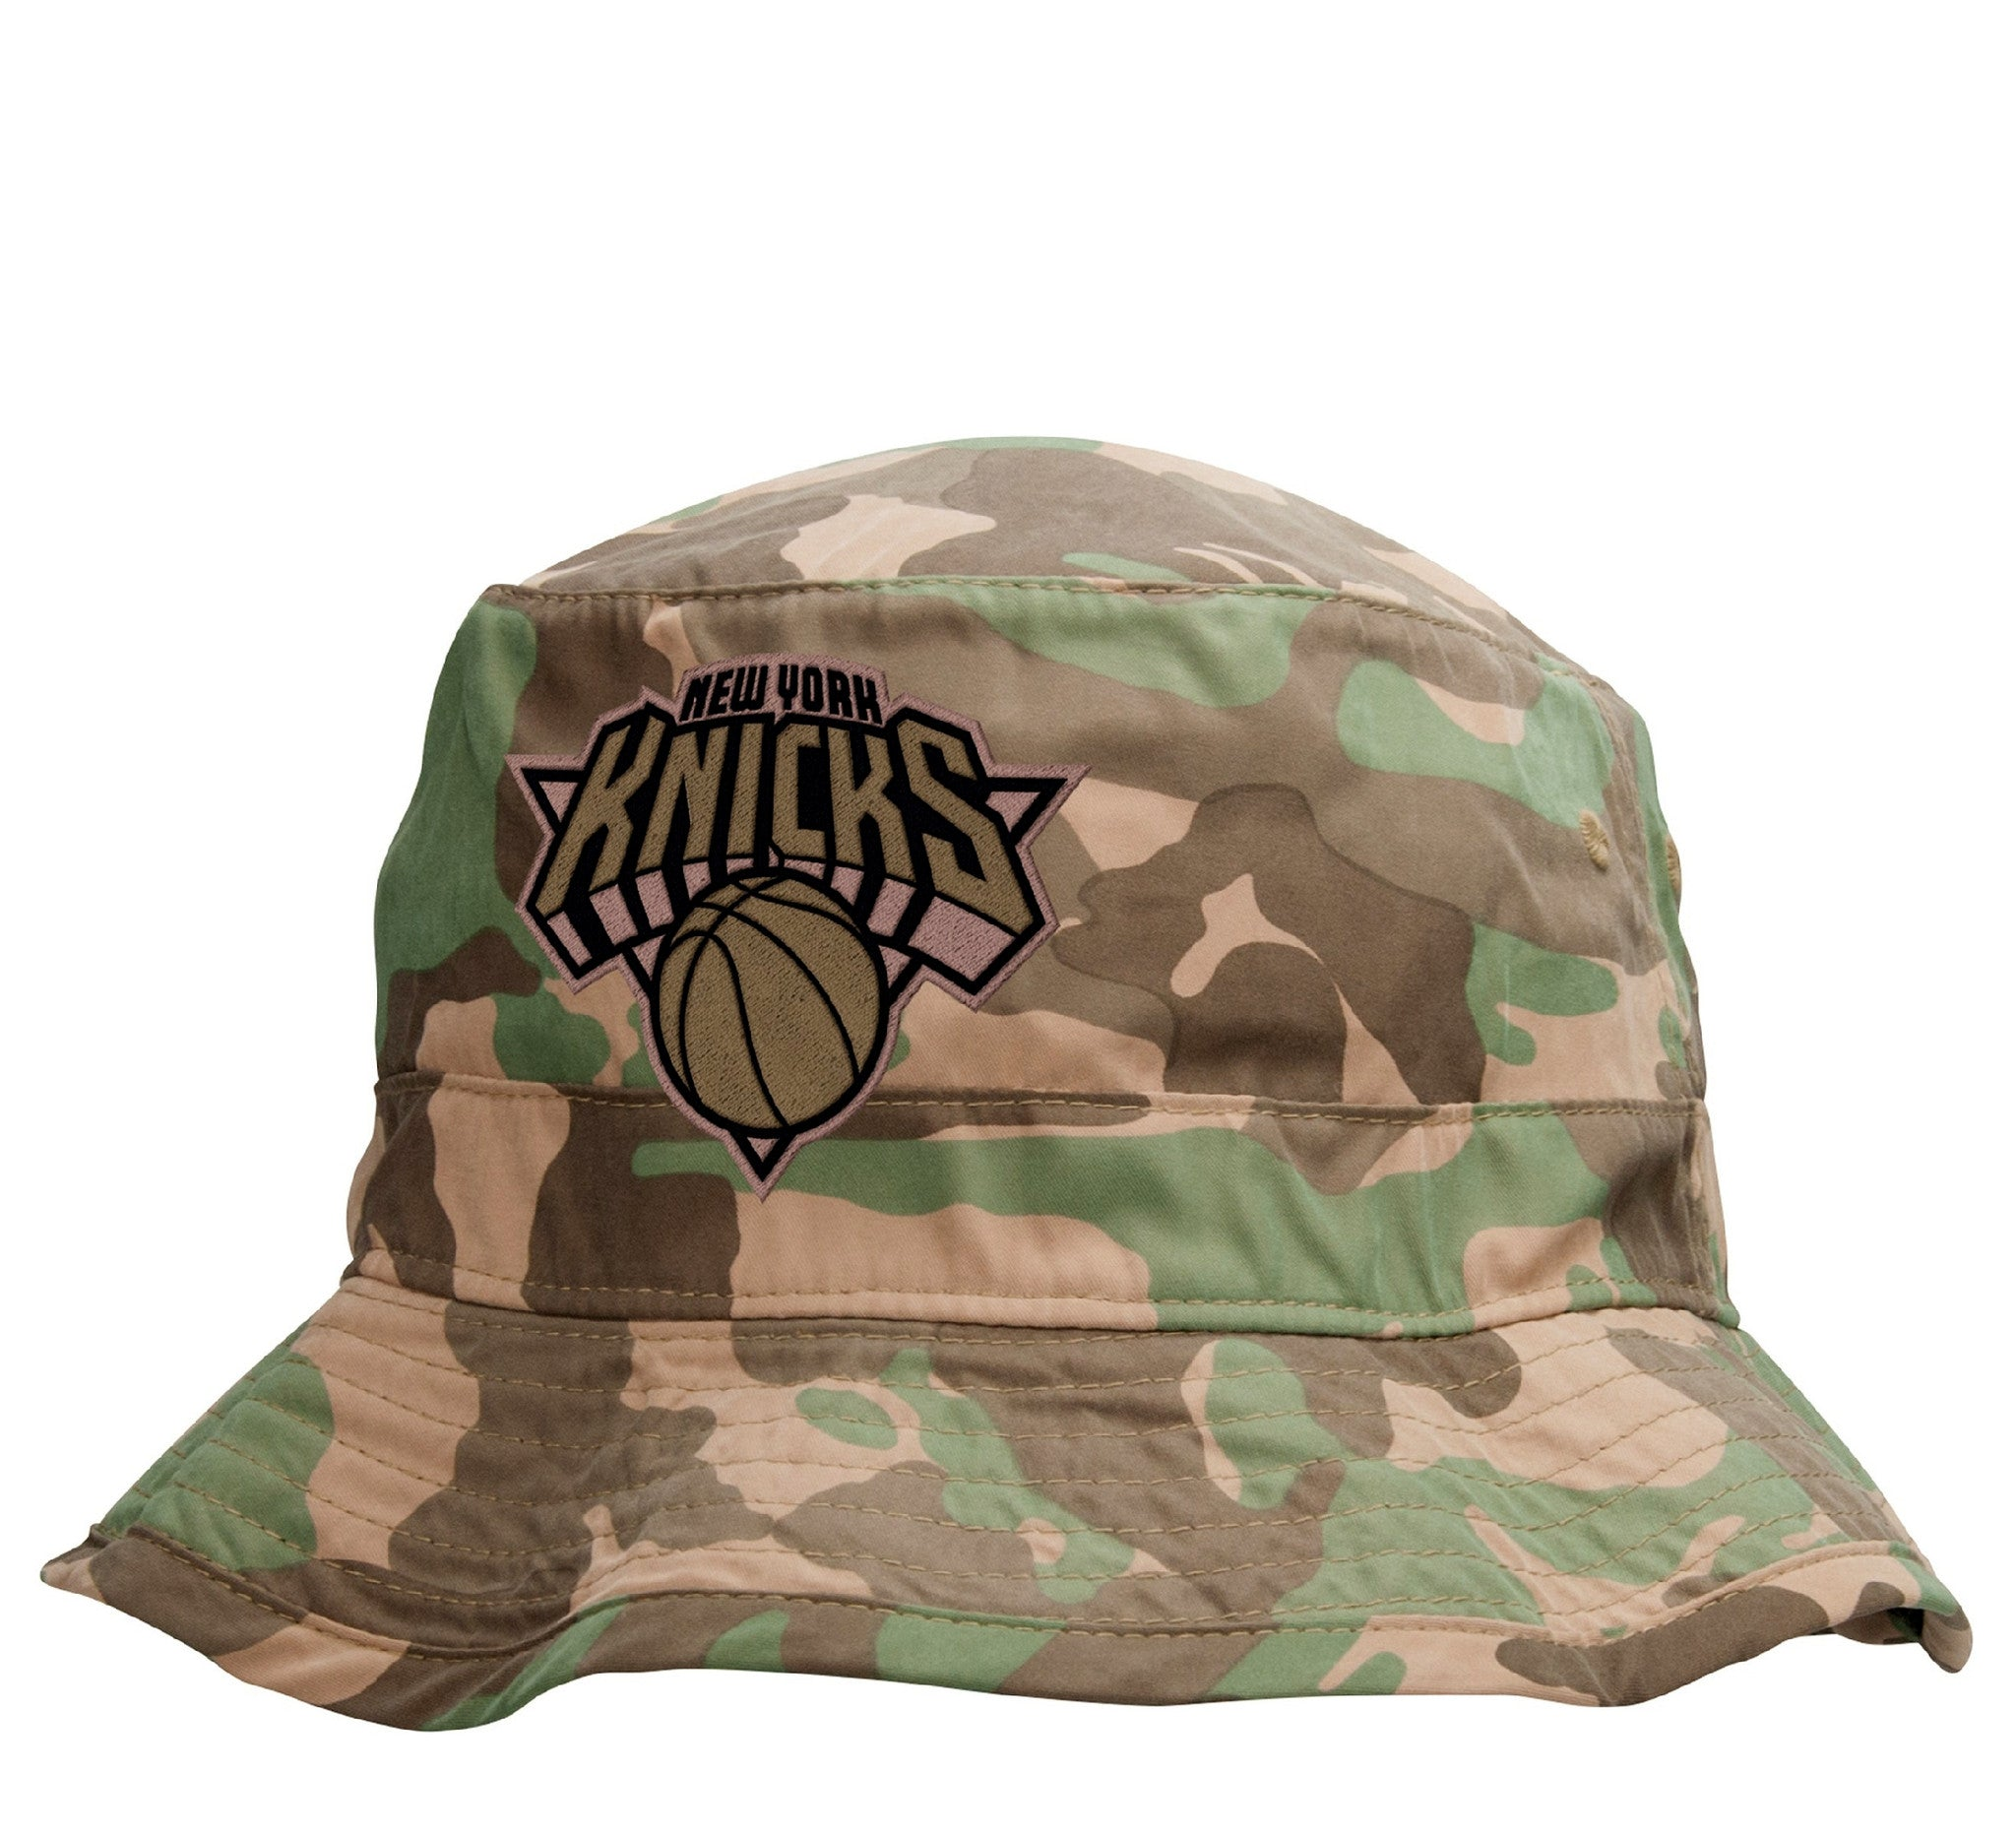 Knicks Retro Camo Bucket Hat - And Still